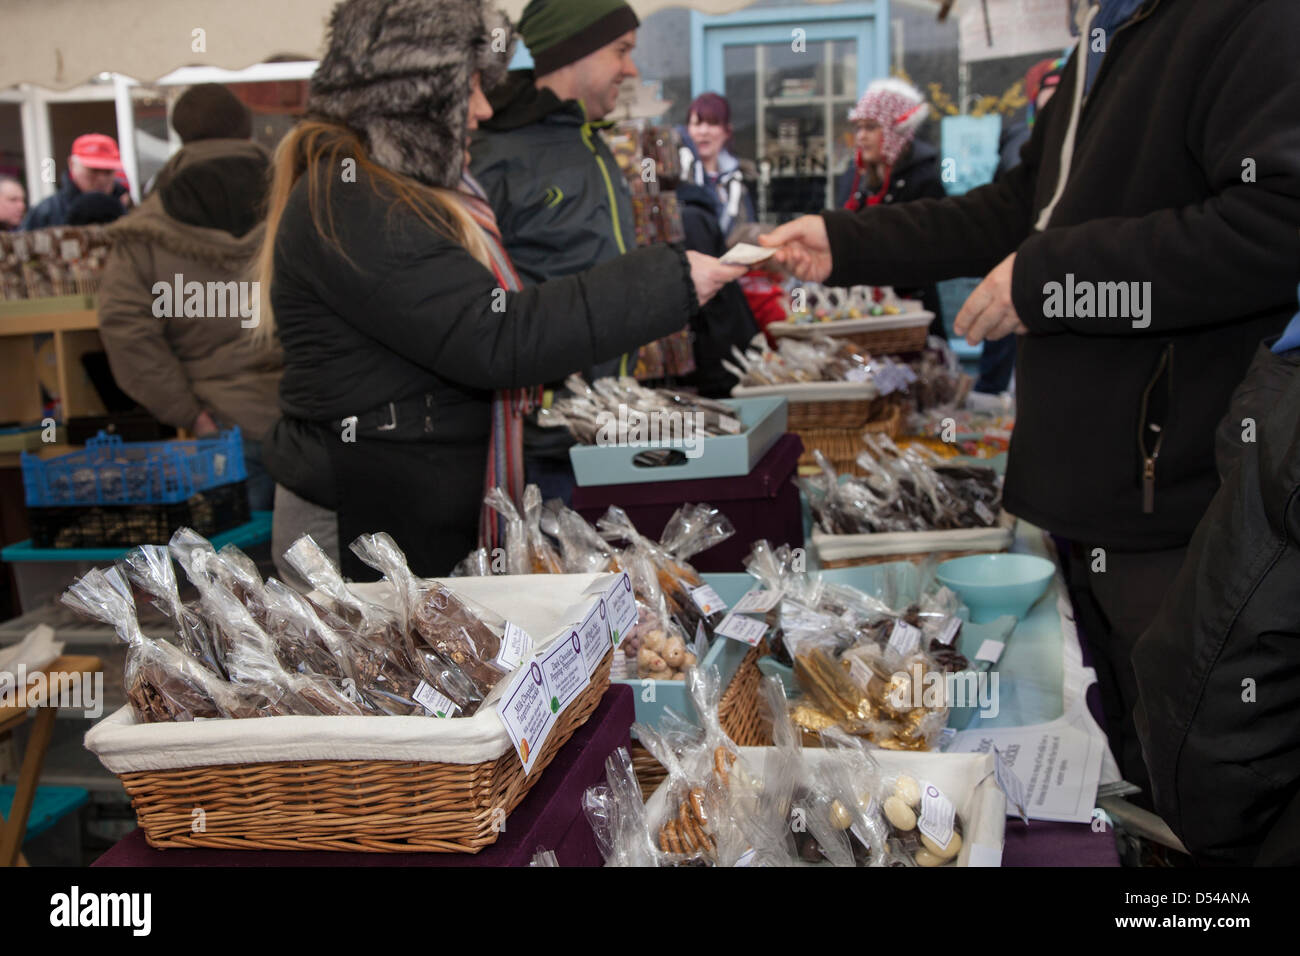 Ramsbottom, Lancashire, UK Sunday 24th March, 2013. Goods for sale at the 5th Annual Chocolate Festival, held in - Stock Image